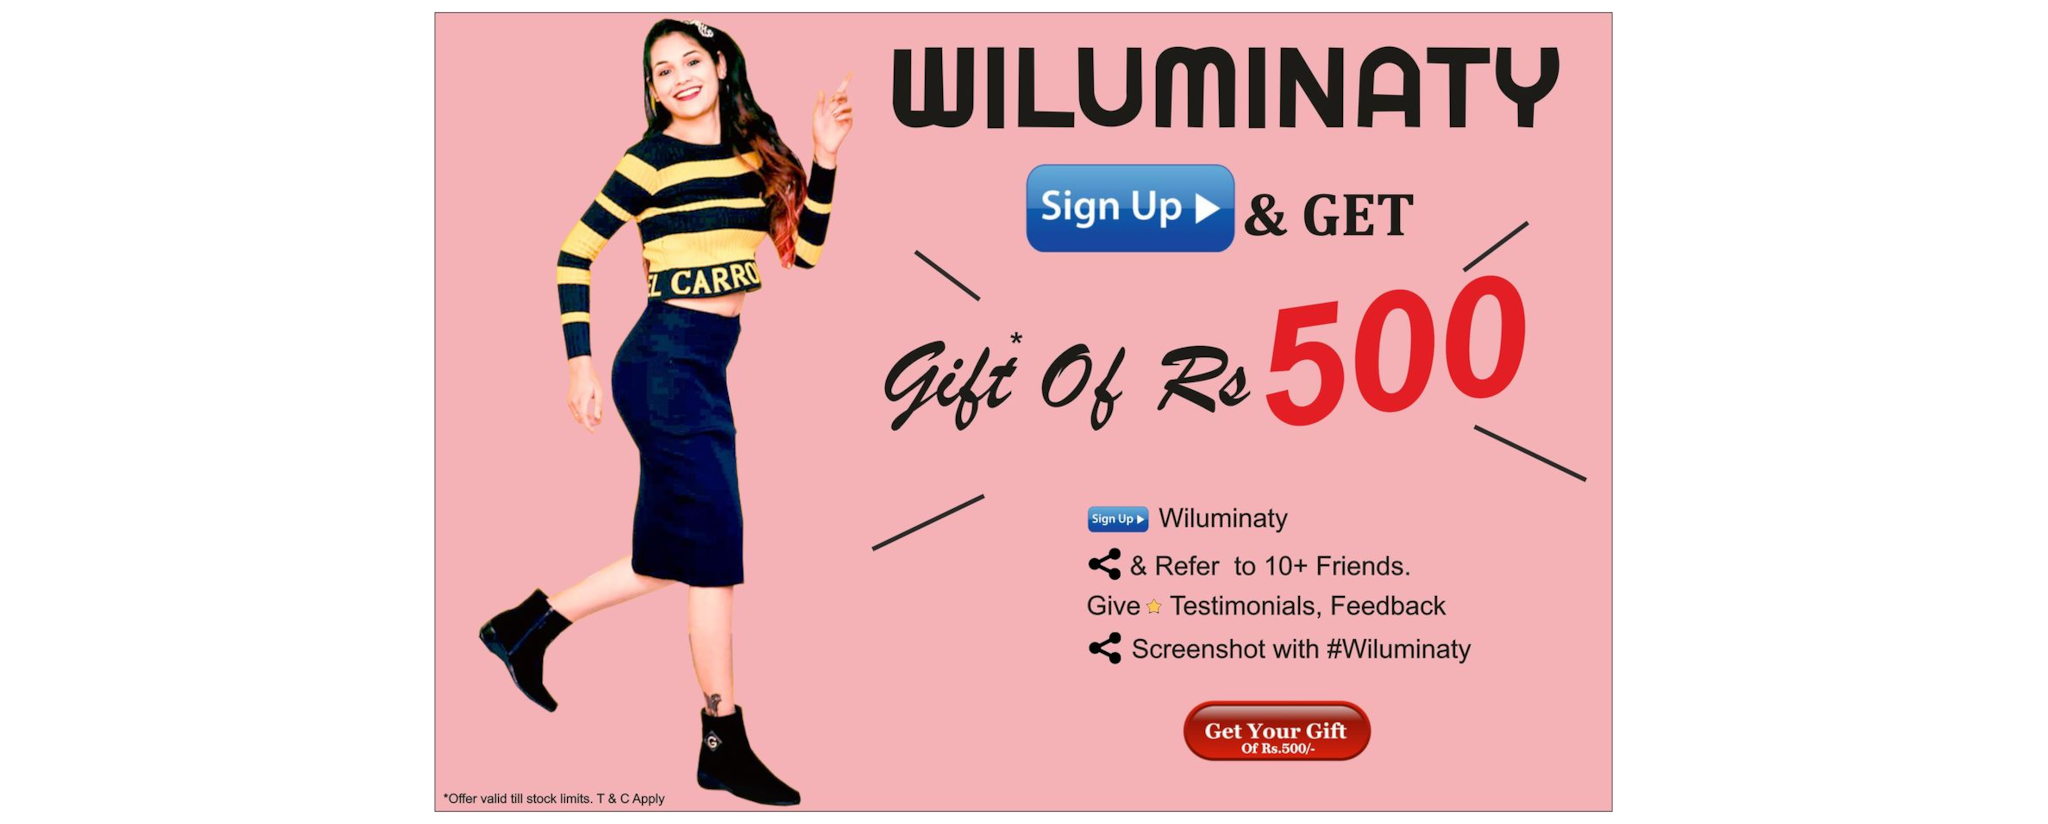 Earn GIFT of Rs. 500/- in just 5 minutes.  Follow below steps -  1.Signup to wiluminaty.com . 2.Share & Refer to 10+ friends. 3.Do (any option) Ratings, Testimonials, Feedback, Blogs for WILUMINATY  4.Share screenshots with #wiluminaty 5.Get GIFTS of Rs. 500/-.  Offer valid till stock limits. T & C apply.   http://www.wiluminaty.com/search?srchval=wiluminaty&city=Nagpur